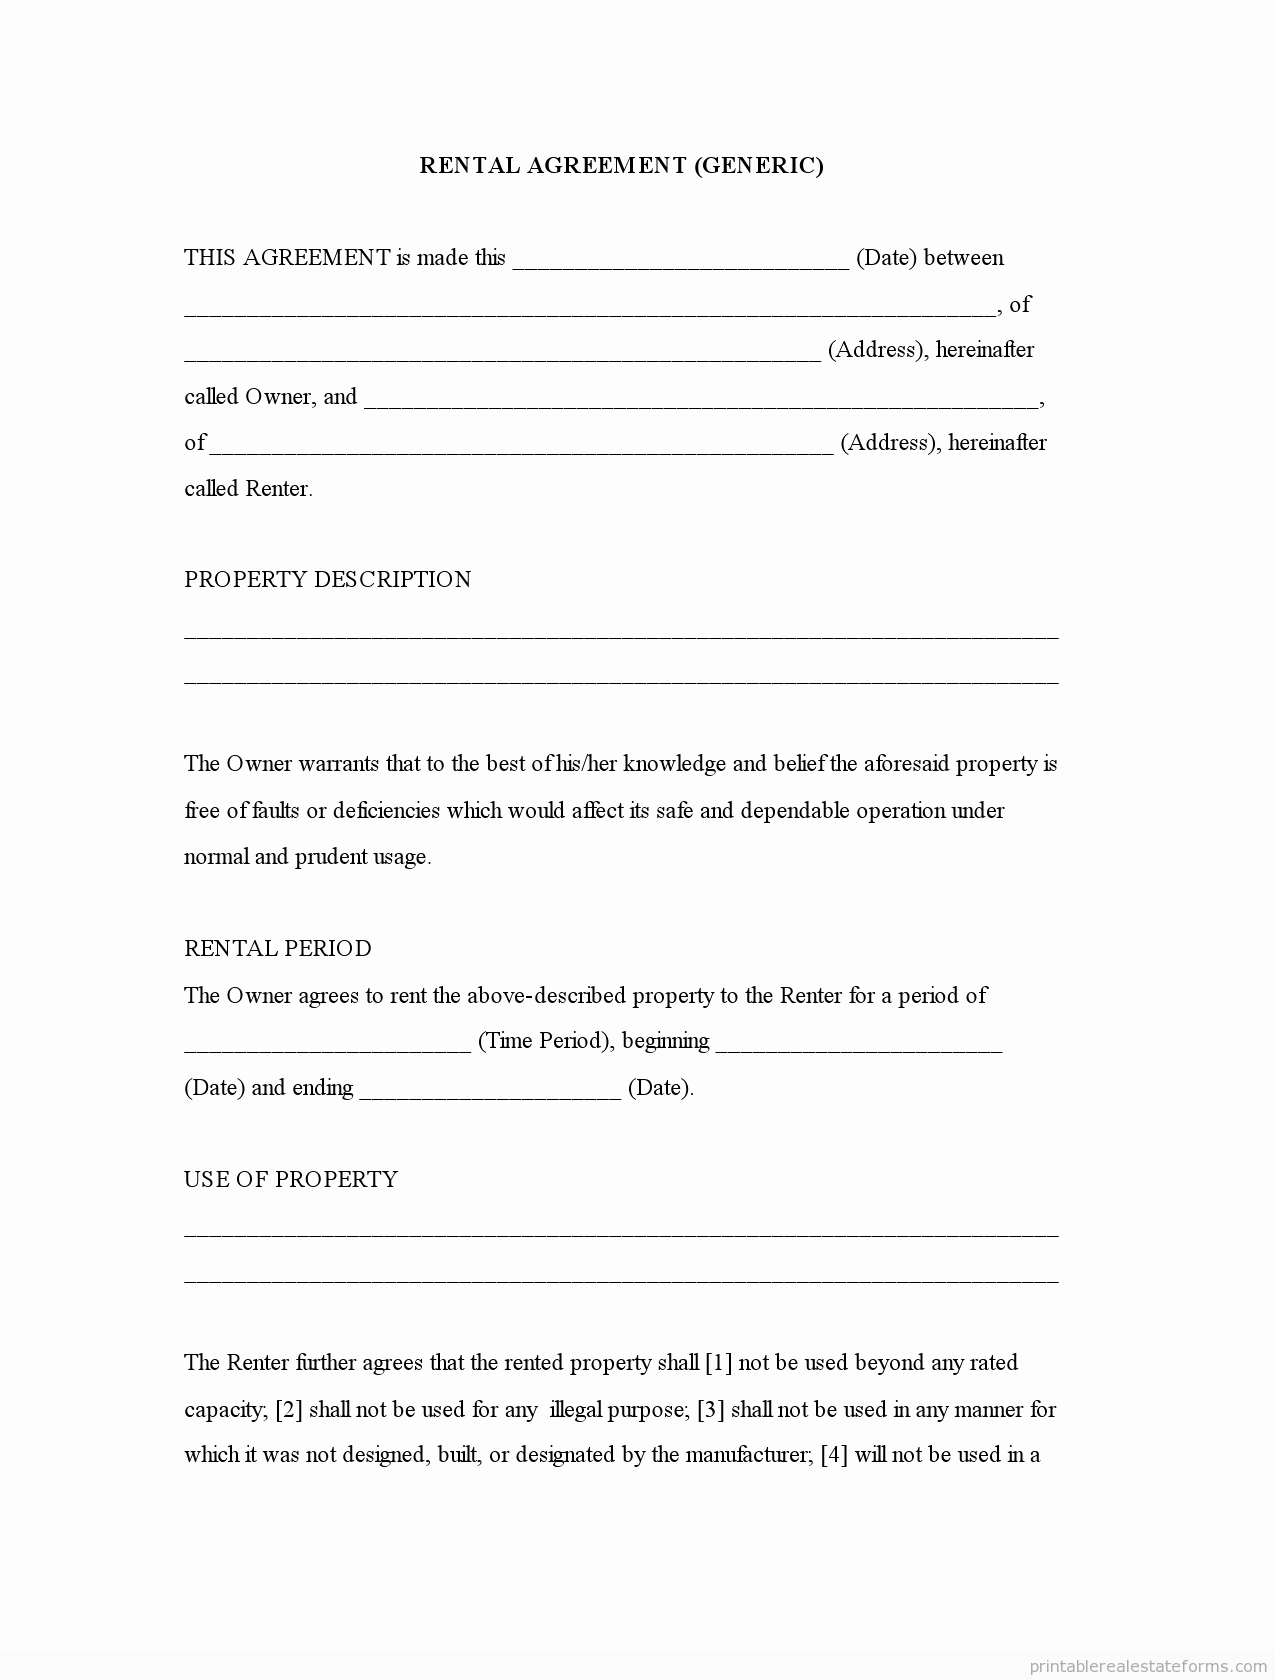 Free Blank Lease Agreement New Generic Template Rental Agreement forms Free Printable